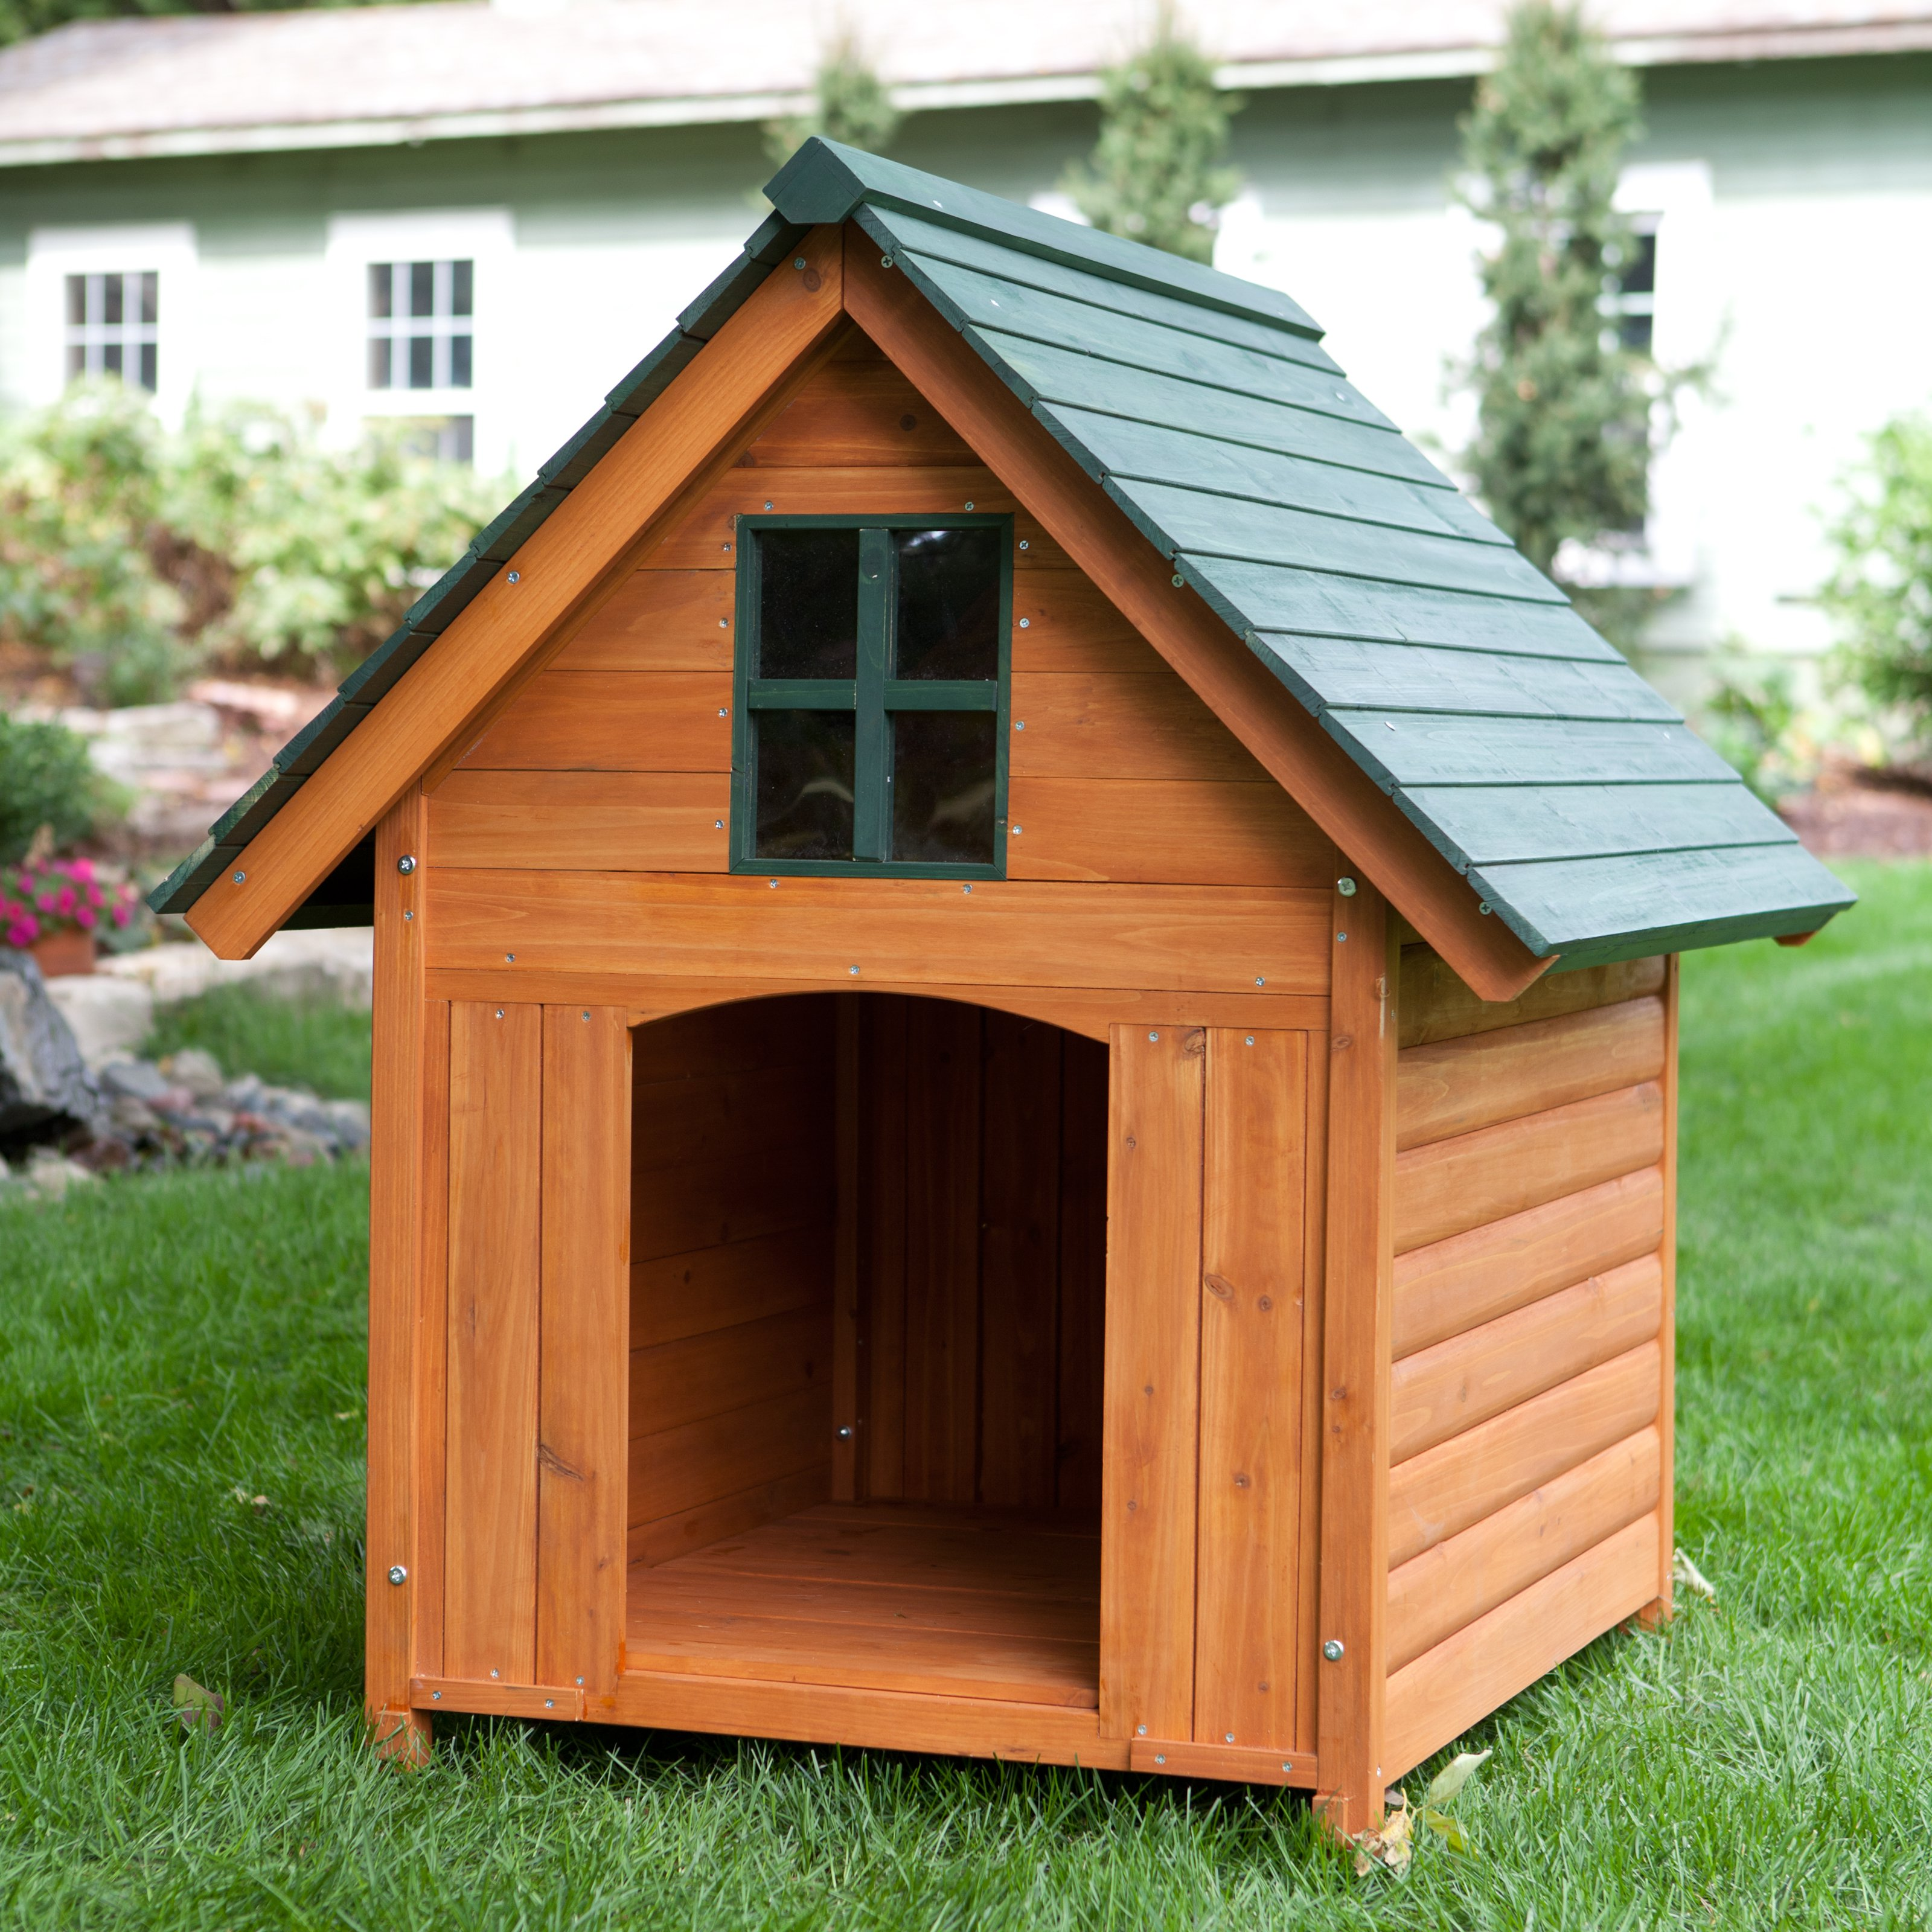 Dog House How To Recycle Home Dog House In Santa Clara And San Mateo